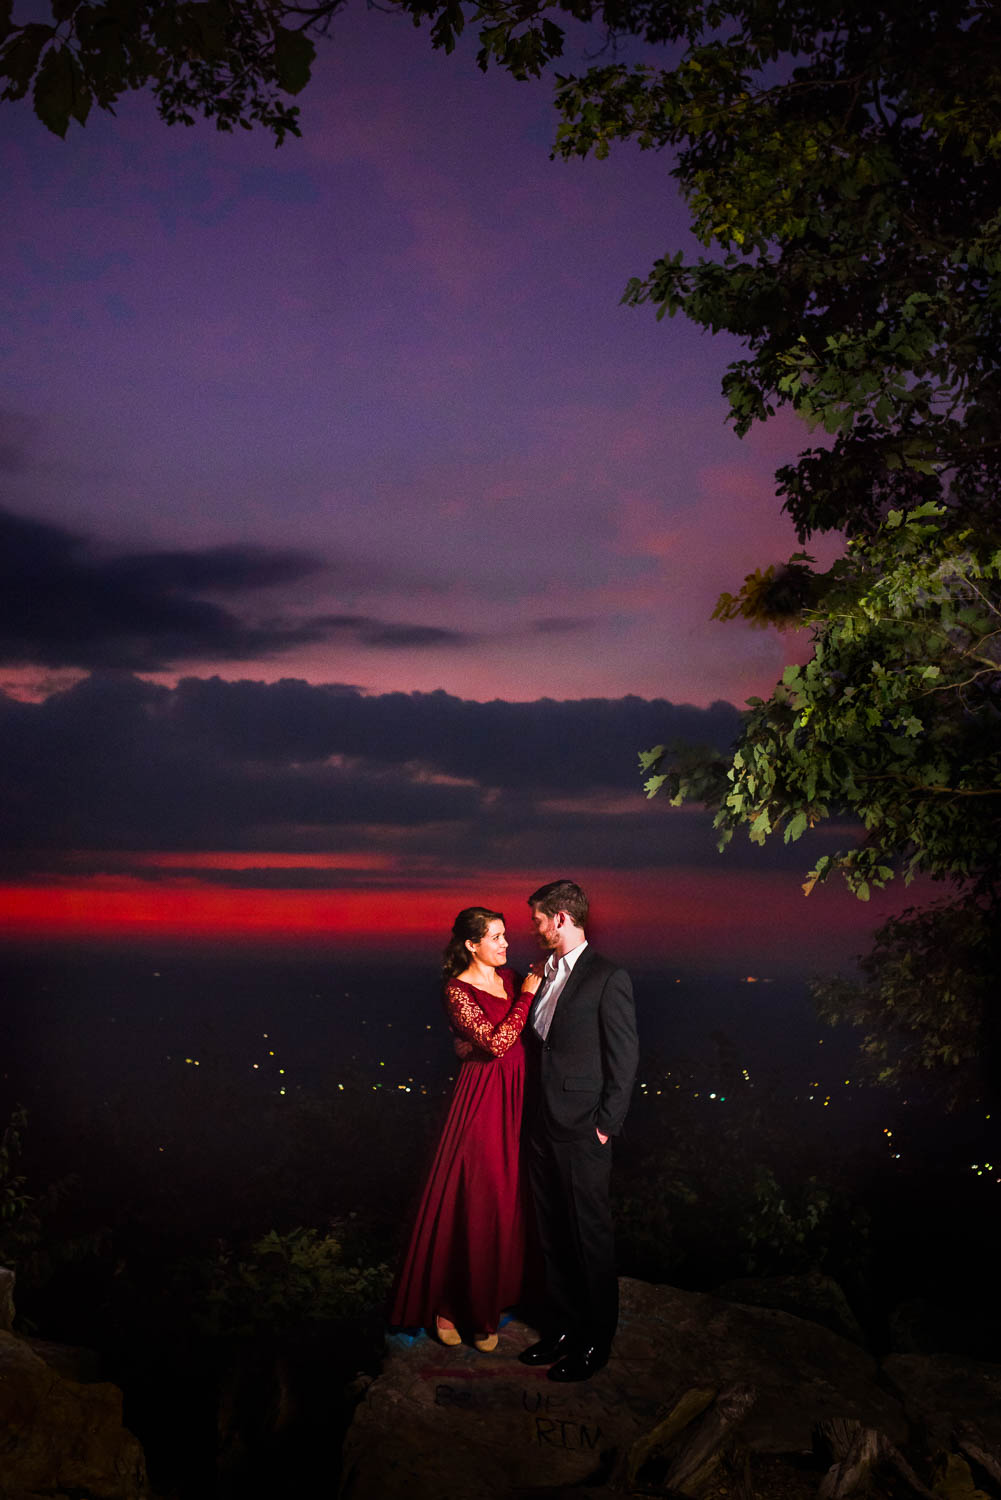 two people outside at night wearing a red dress and black suit